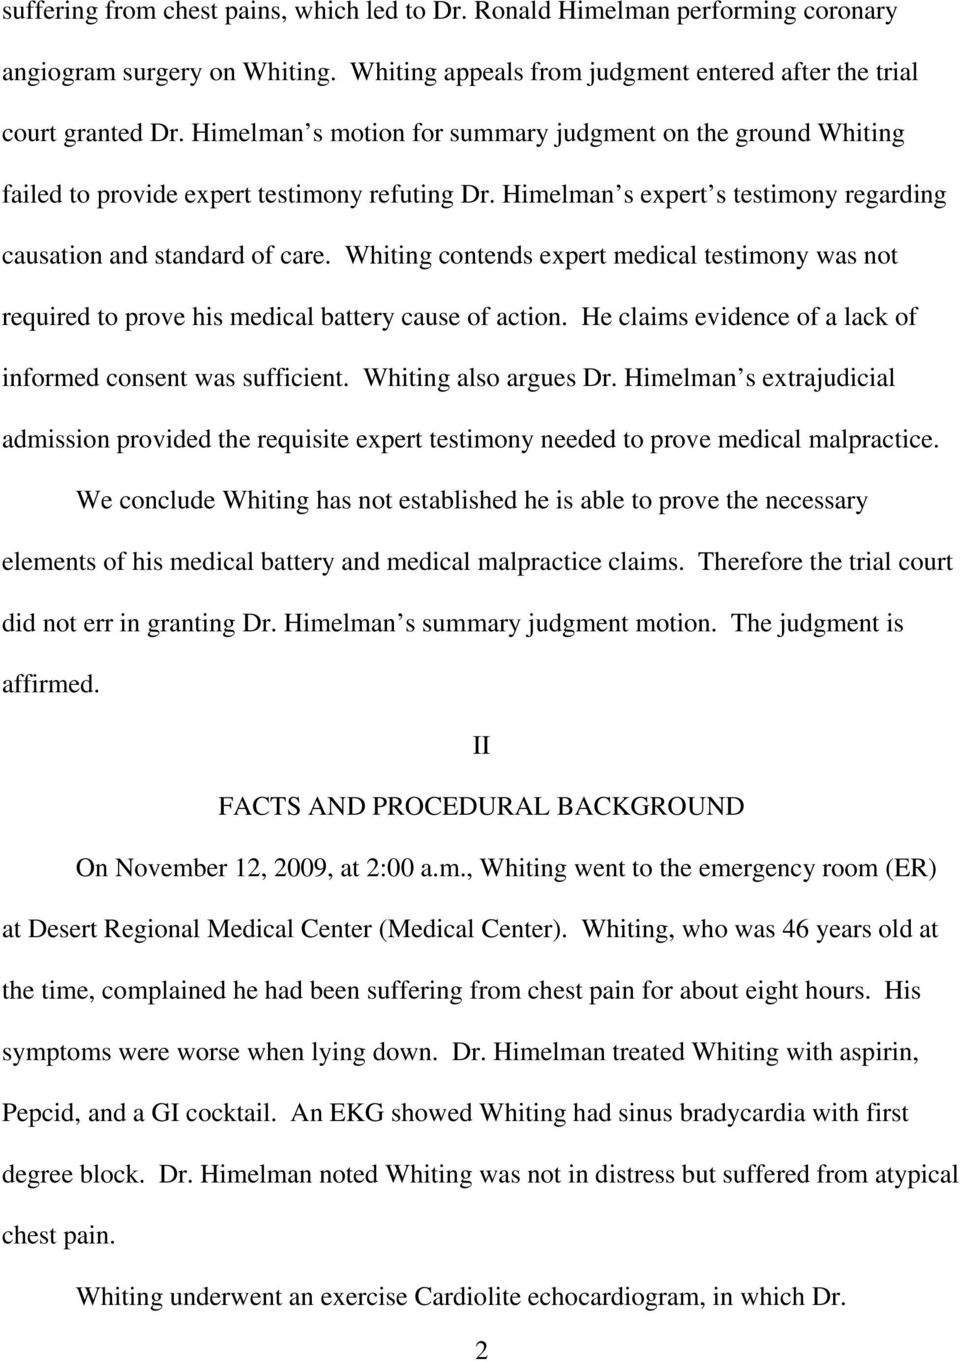 Whiting contends expert medical testimony was not required to prove his medical battery cause of action. He claims evidence of a lack of informed consent was sufficient. Whiting also argues Dr.